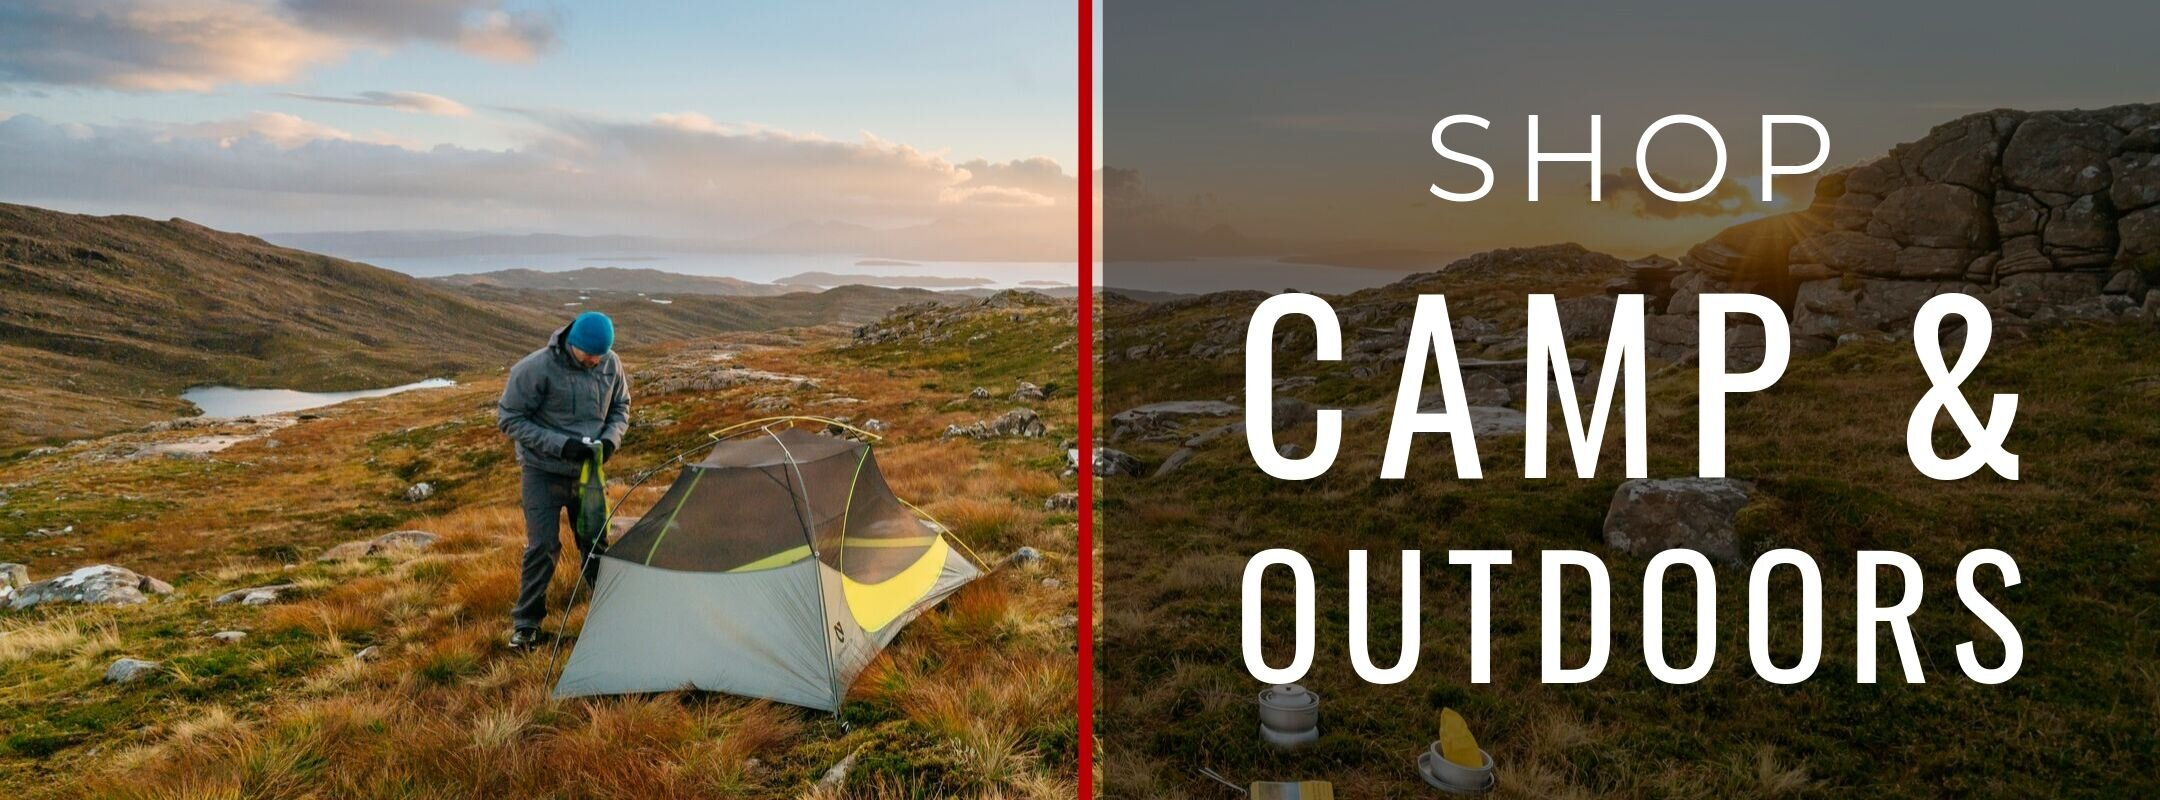 SHOP CAMPING & OUTDOORS